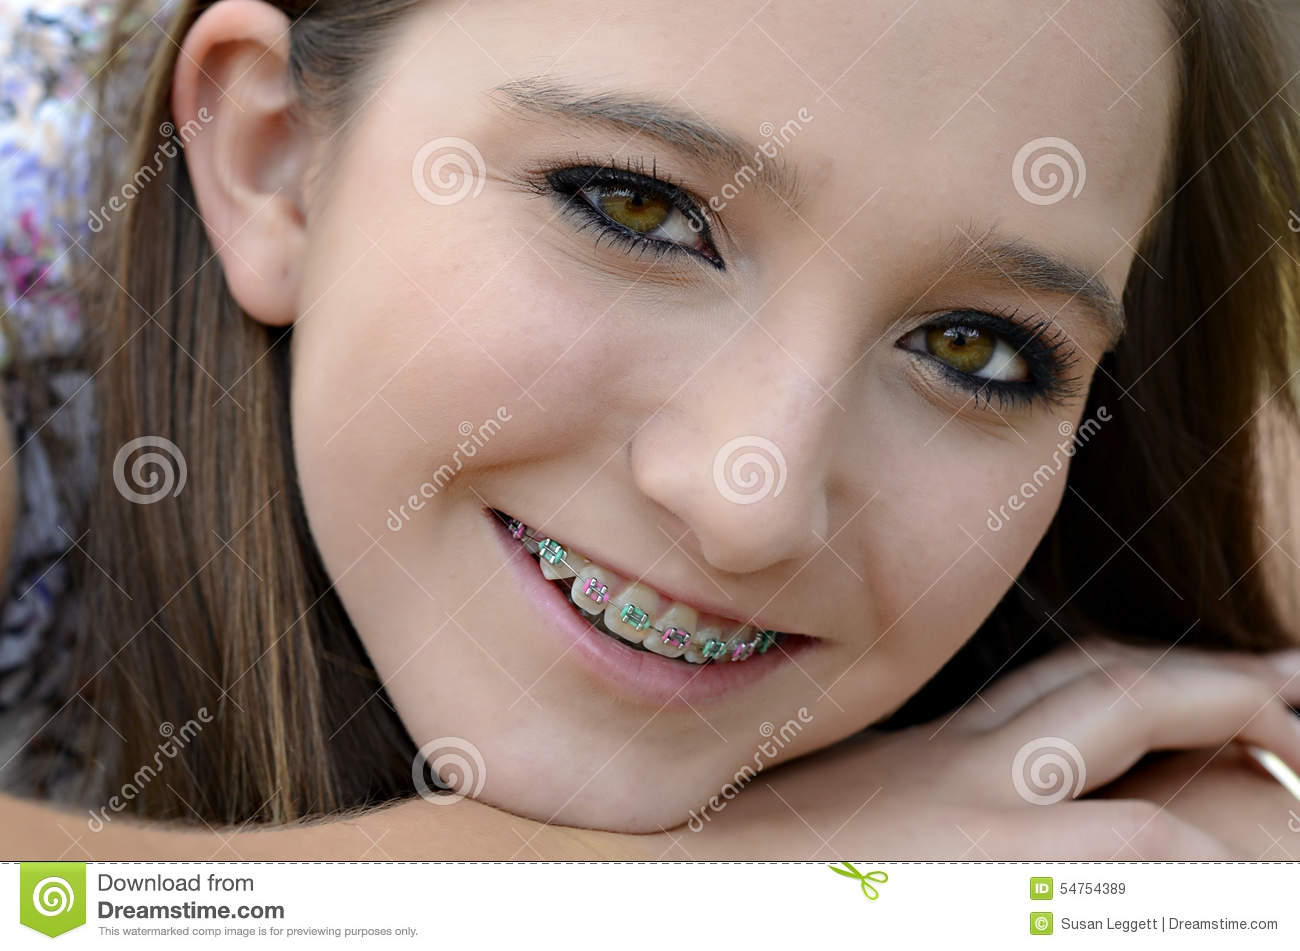 pretty faces with braces nude